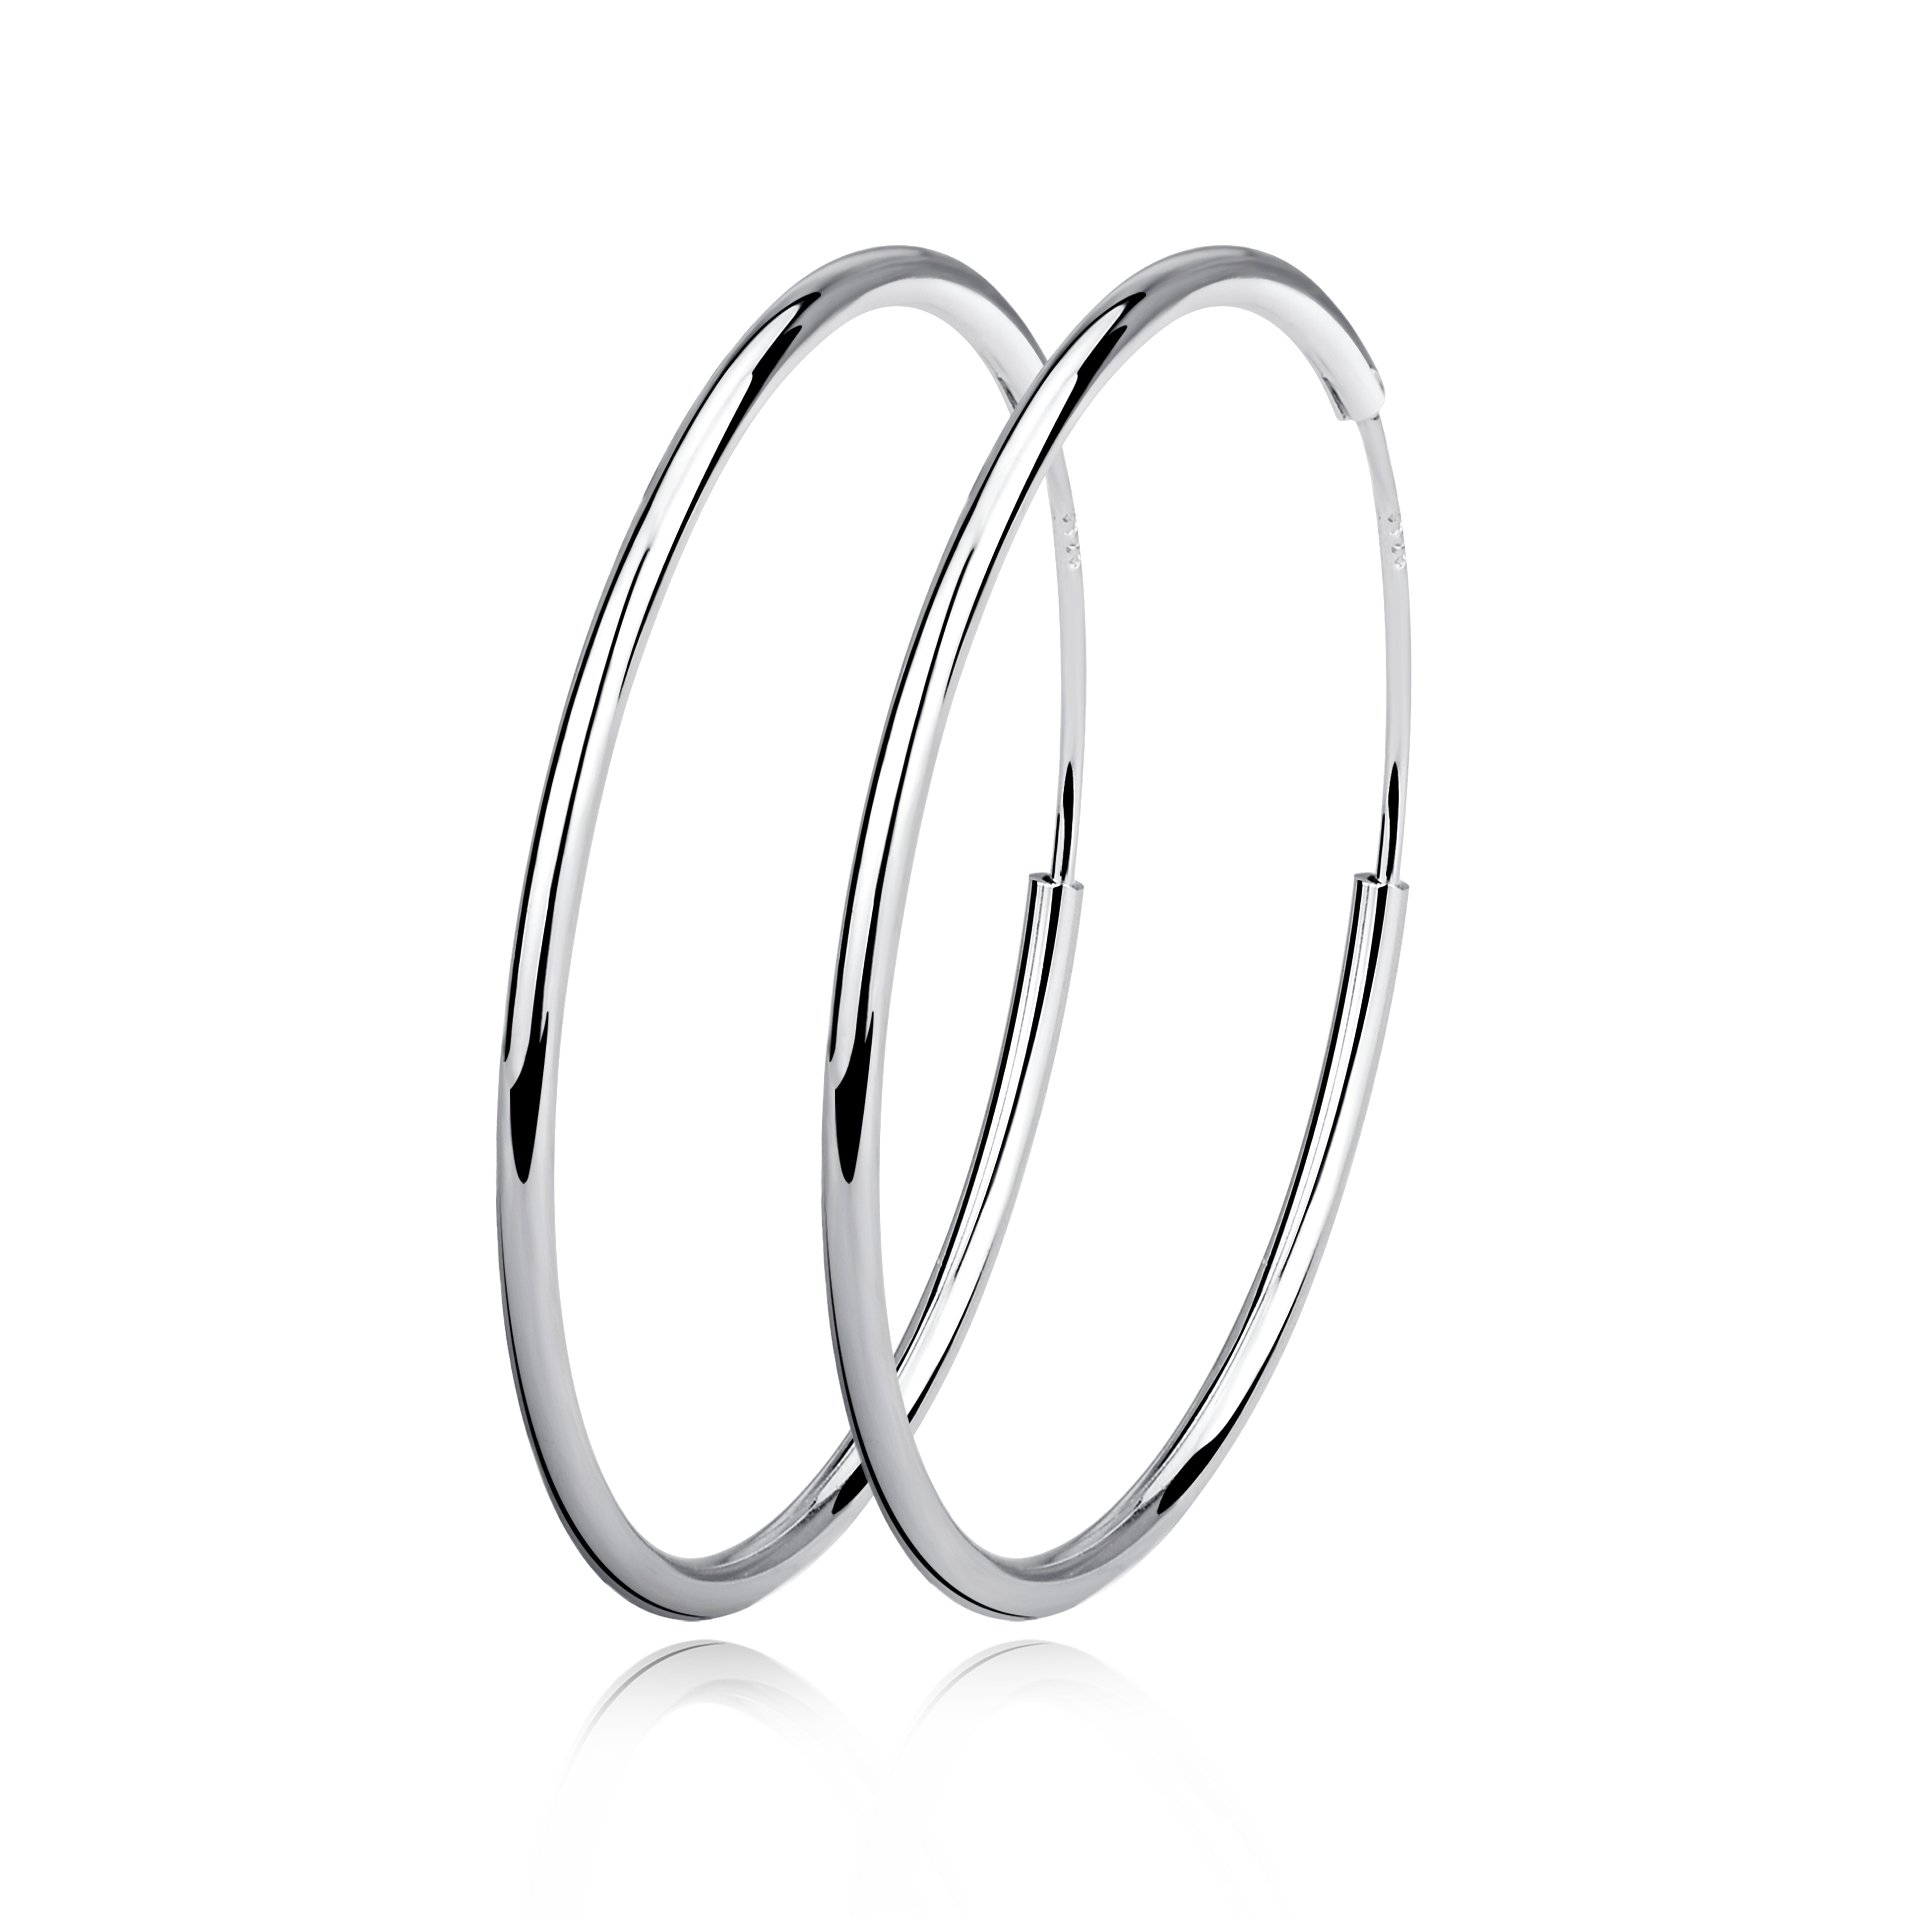 Hoop Earrings Sterling Silver Circle Endless Earrings Hoops Jewelry for Women Girls,Daimeter 20,30,40,50,60mm (Diameter 30mm) by LUHE